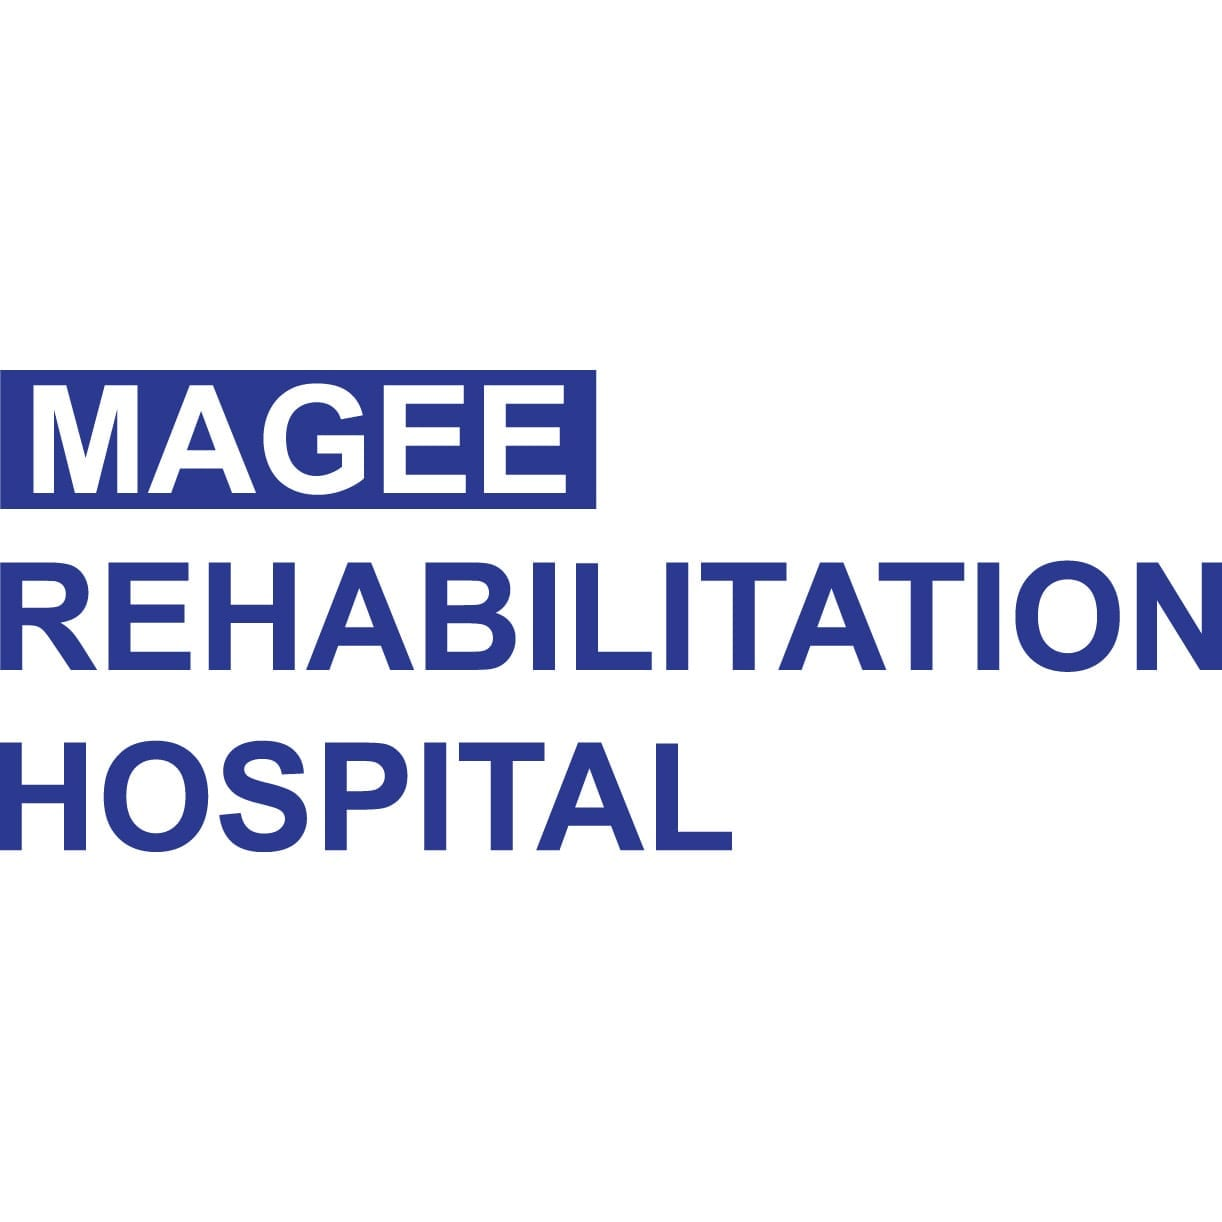 prosthetic support groups - magee